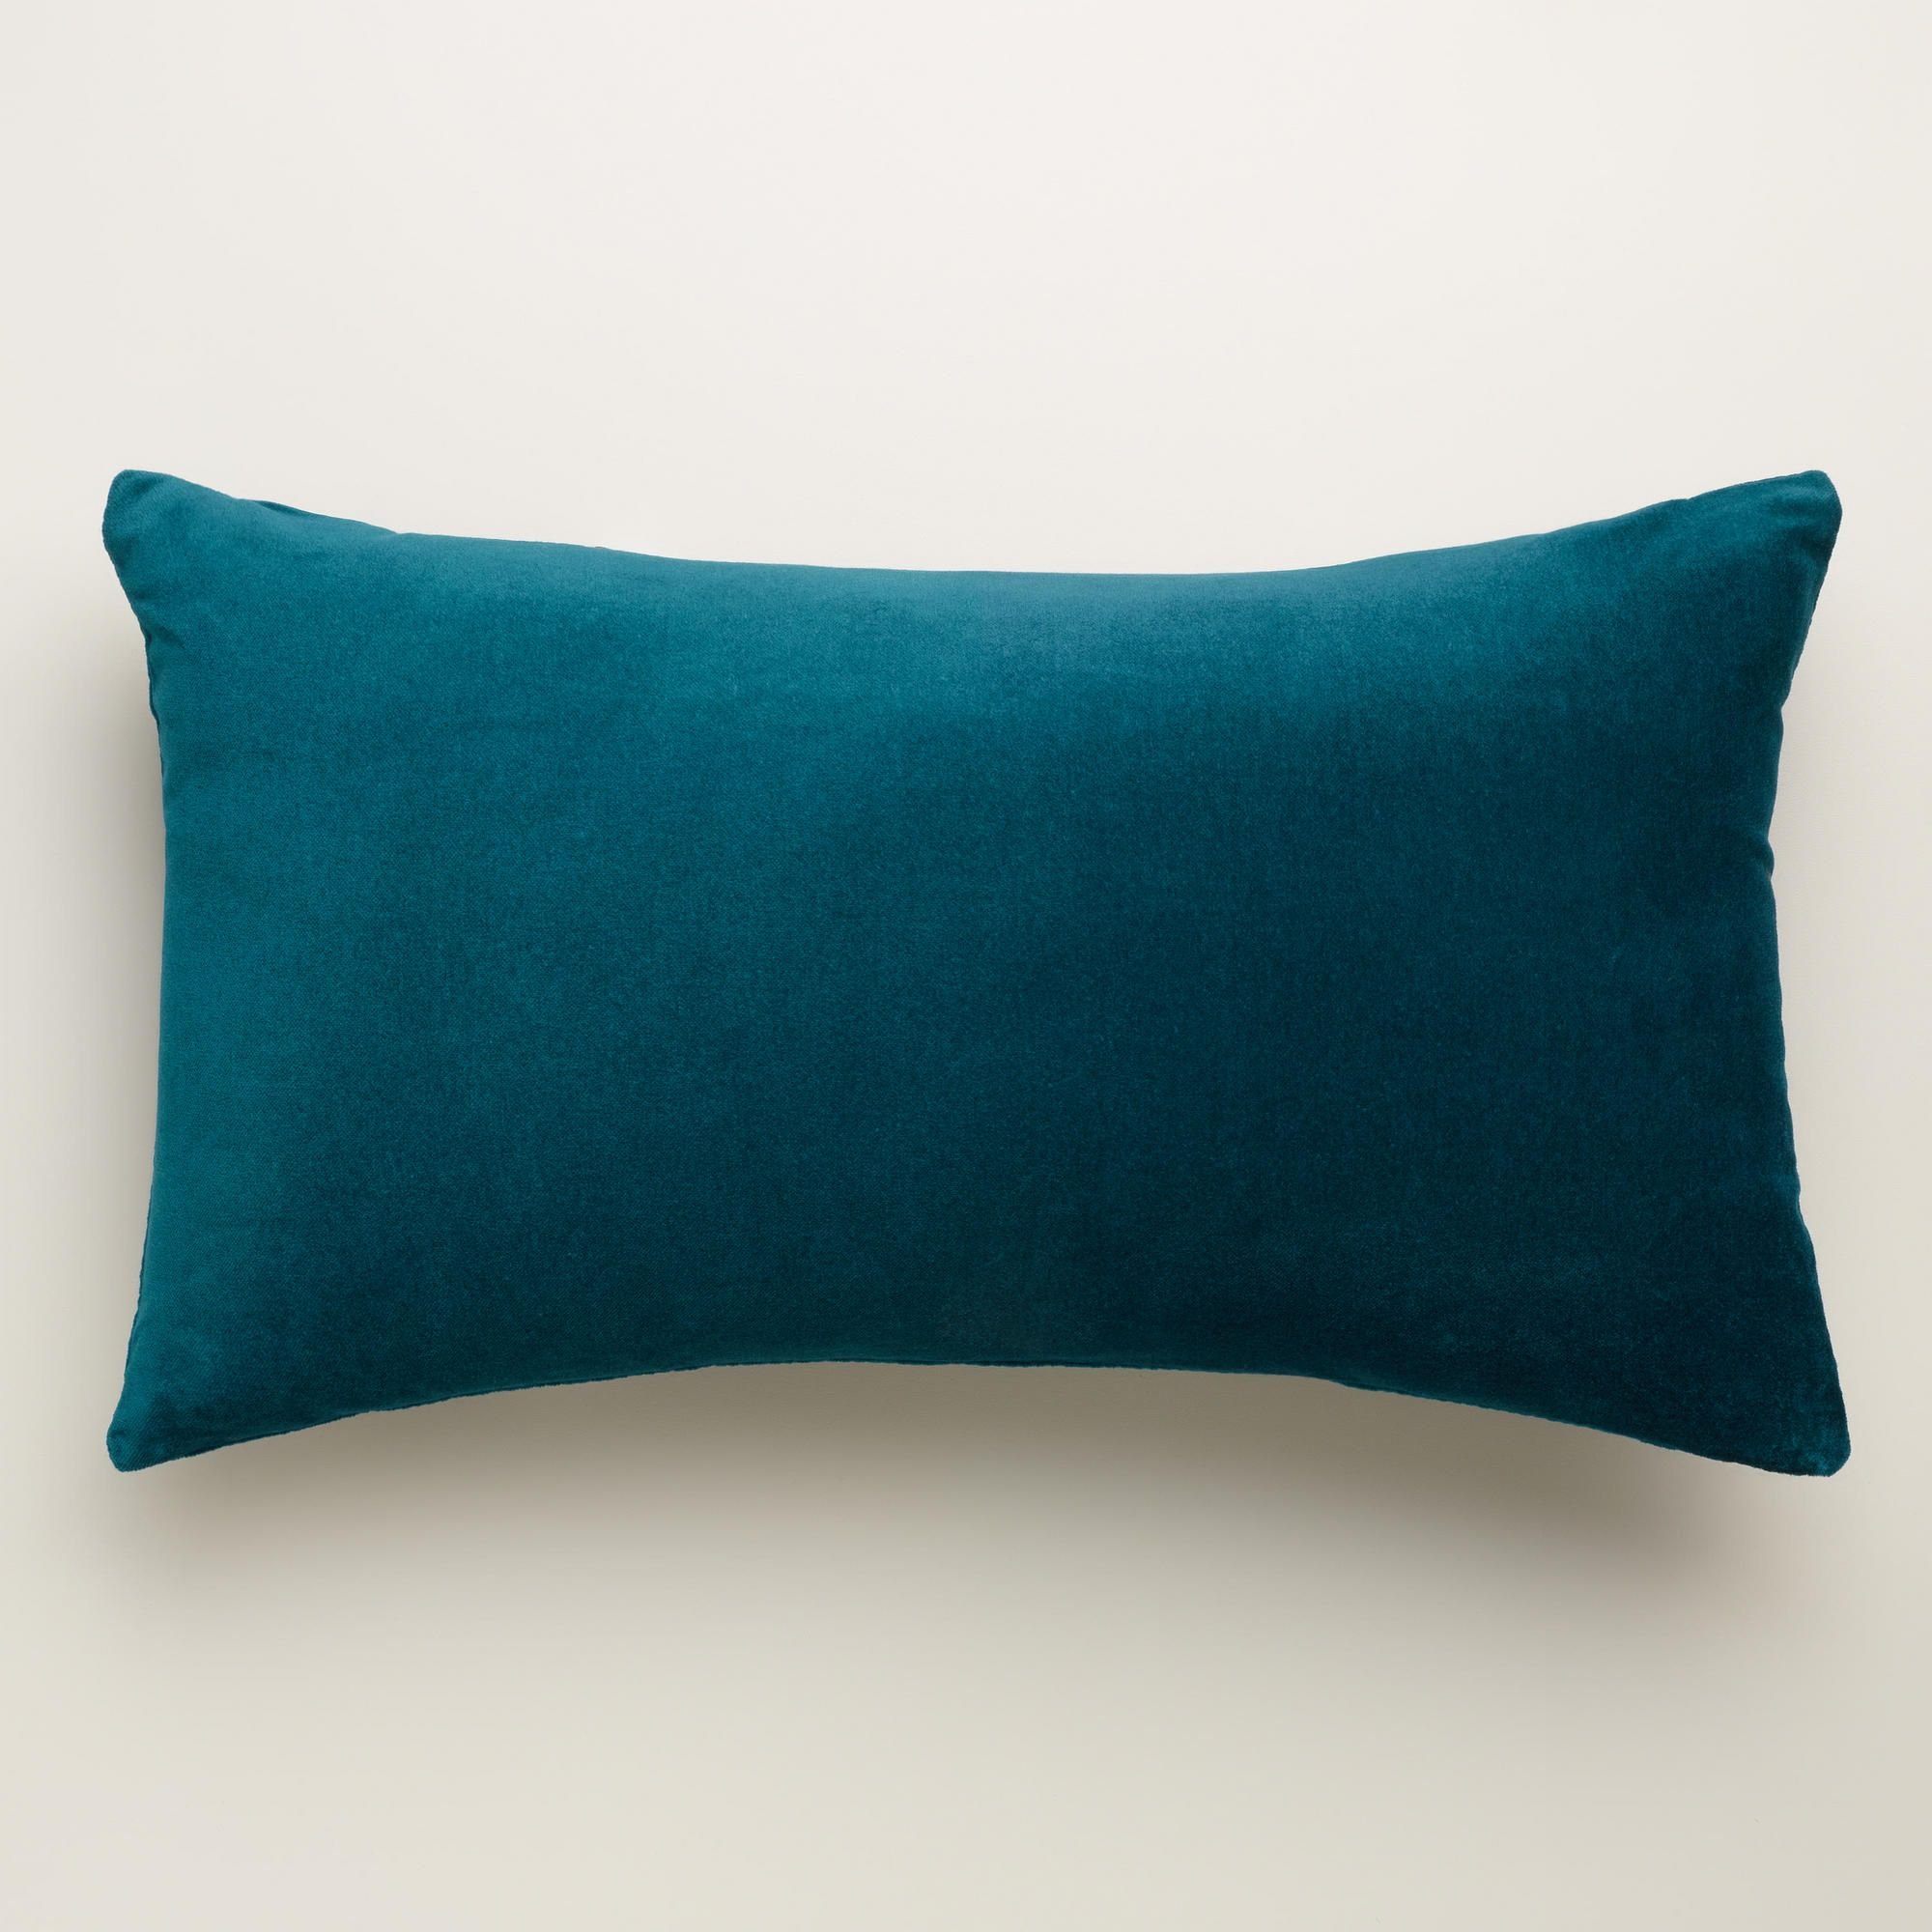 teal velvet lumbar pillow pillows modern minimalist and living